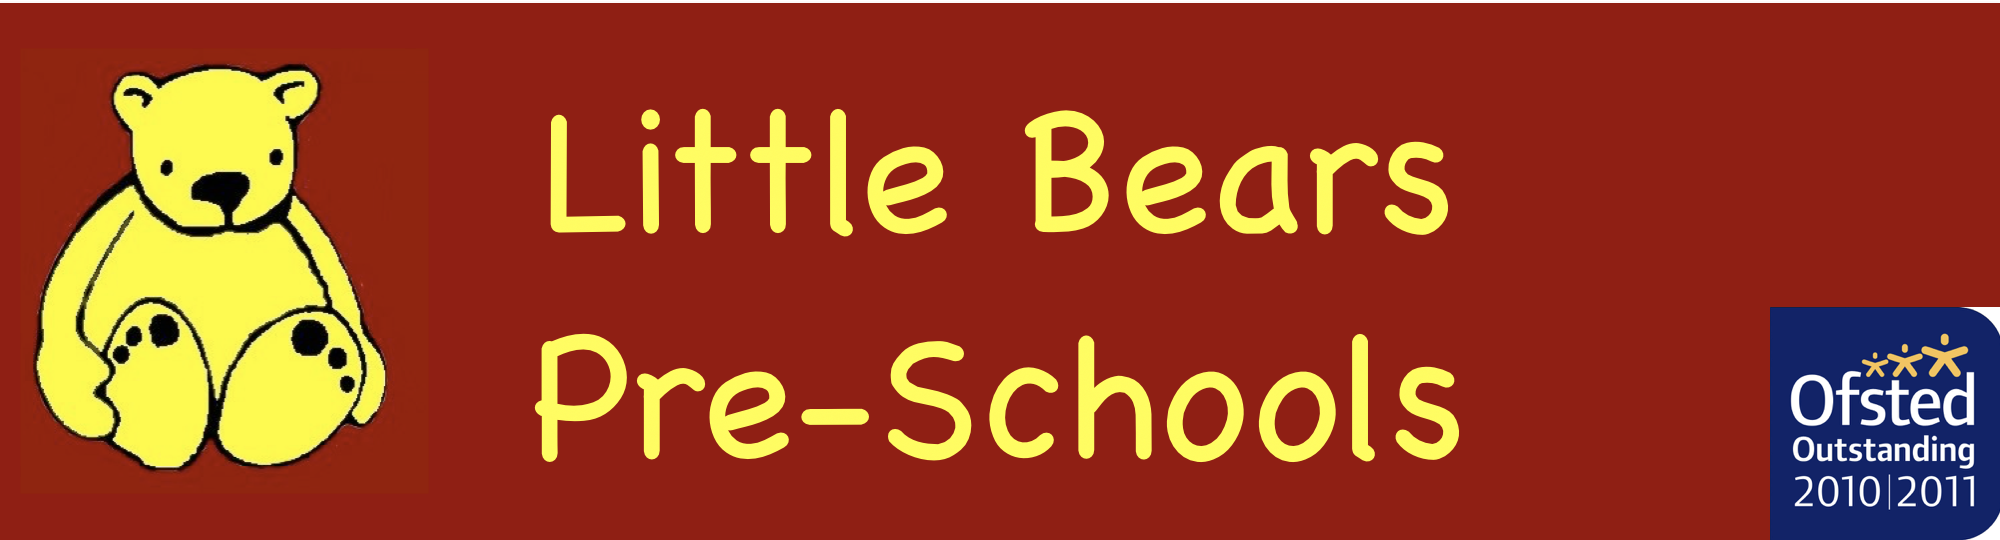 Little Bears Pre-School